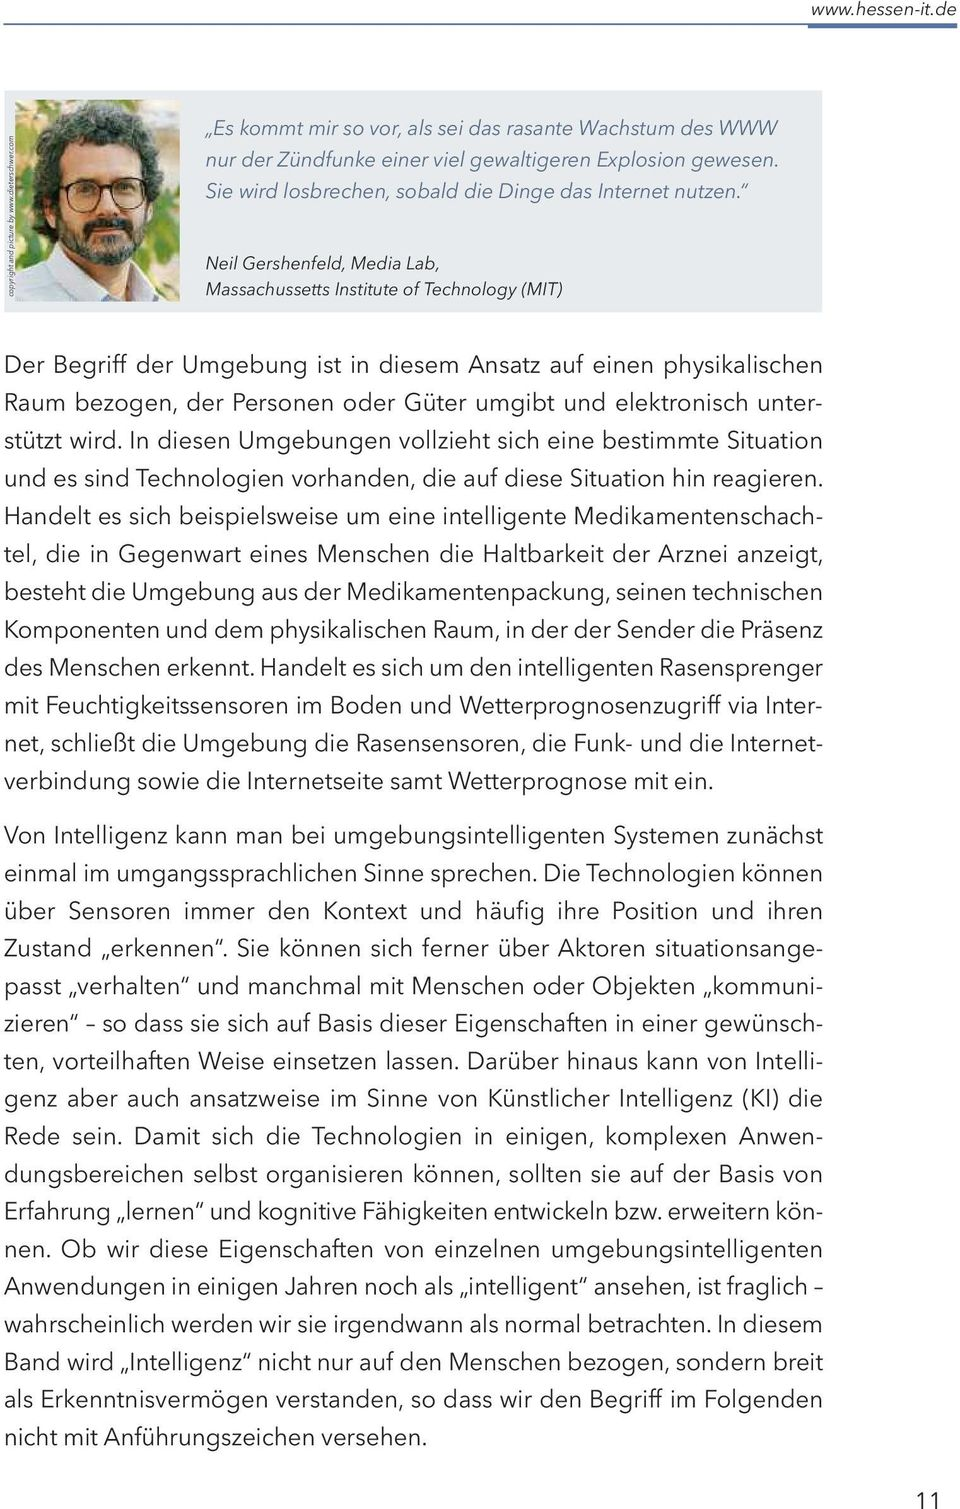 Neil Gershenfeld, Media Lab, Massachussetts Institute of Technology (MIT) Der Begriff der Umgebung ist in diesem Ansatz auf einen physikalischen Raum bezogen, der Personen oder Güter umgibt und